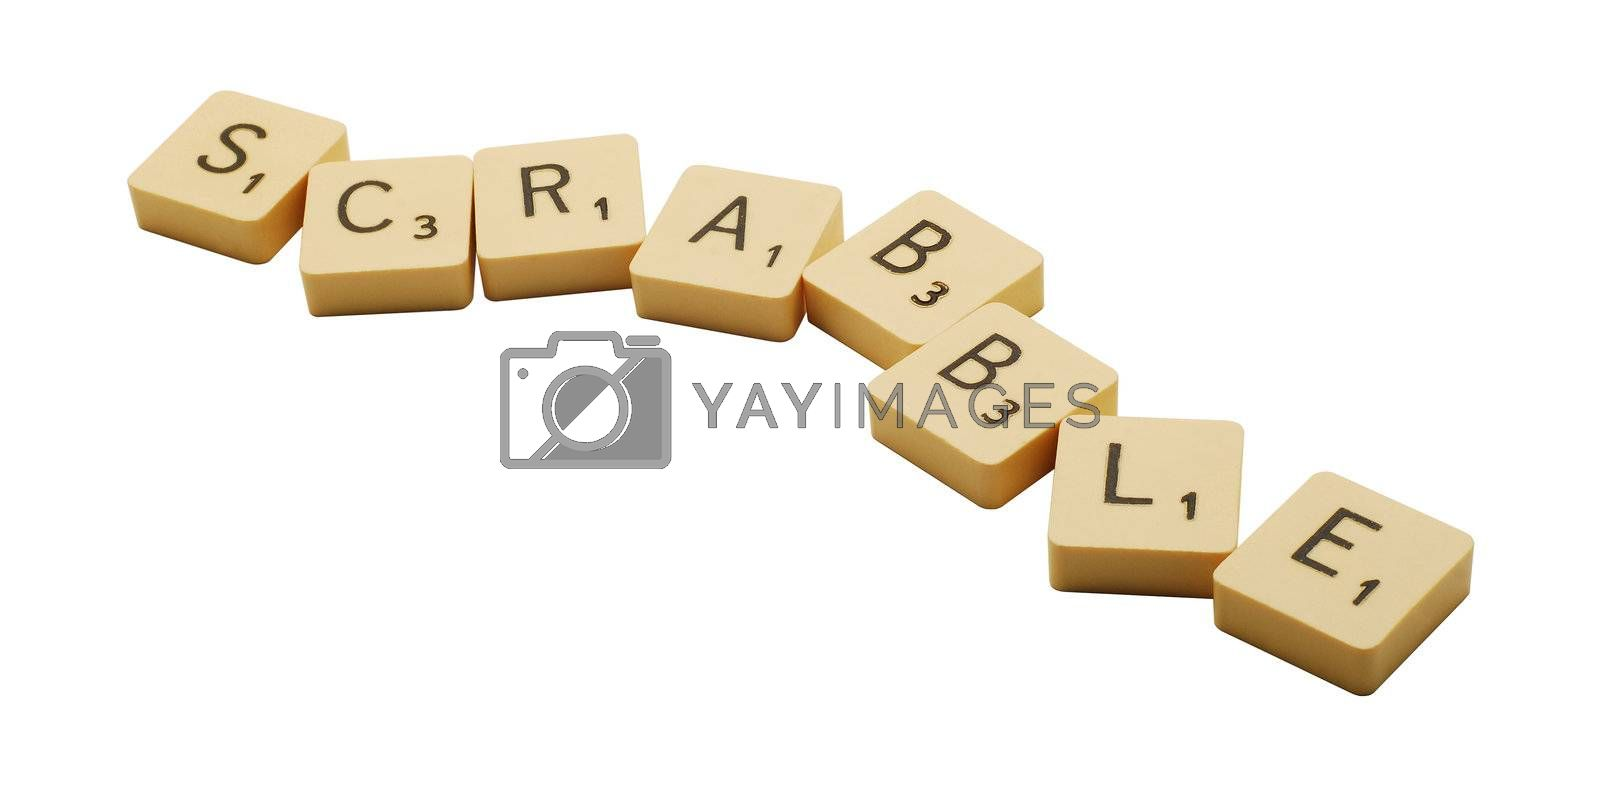 Caransebes, Romania, October, 13th, 2009 - Scrabble game pieces isolated on white